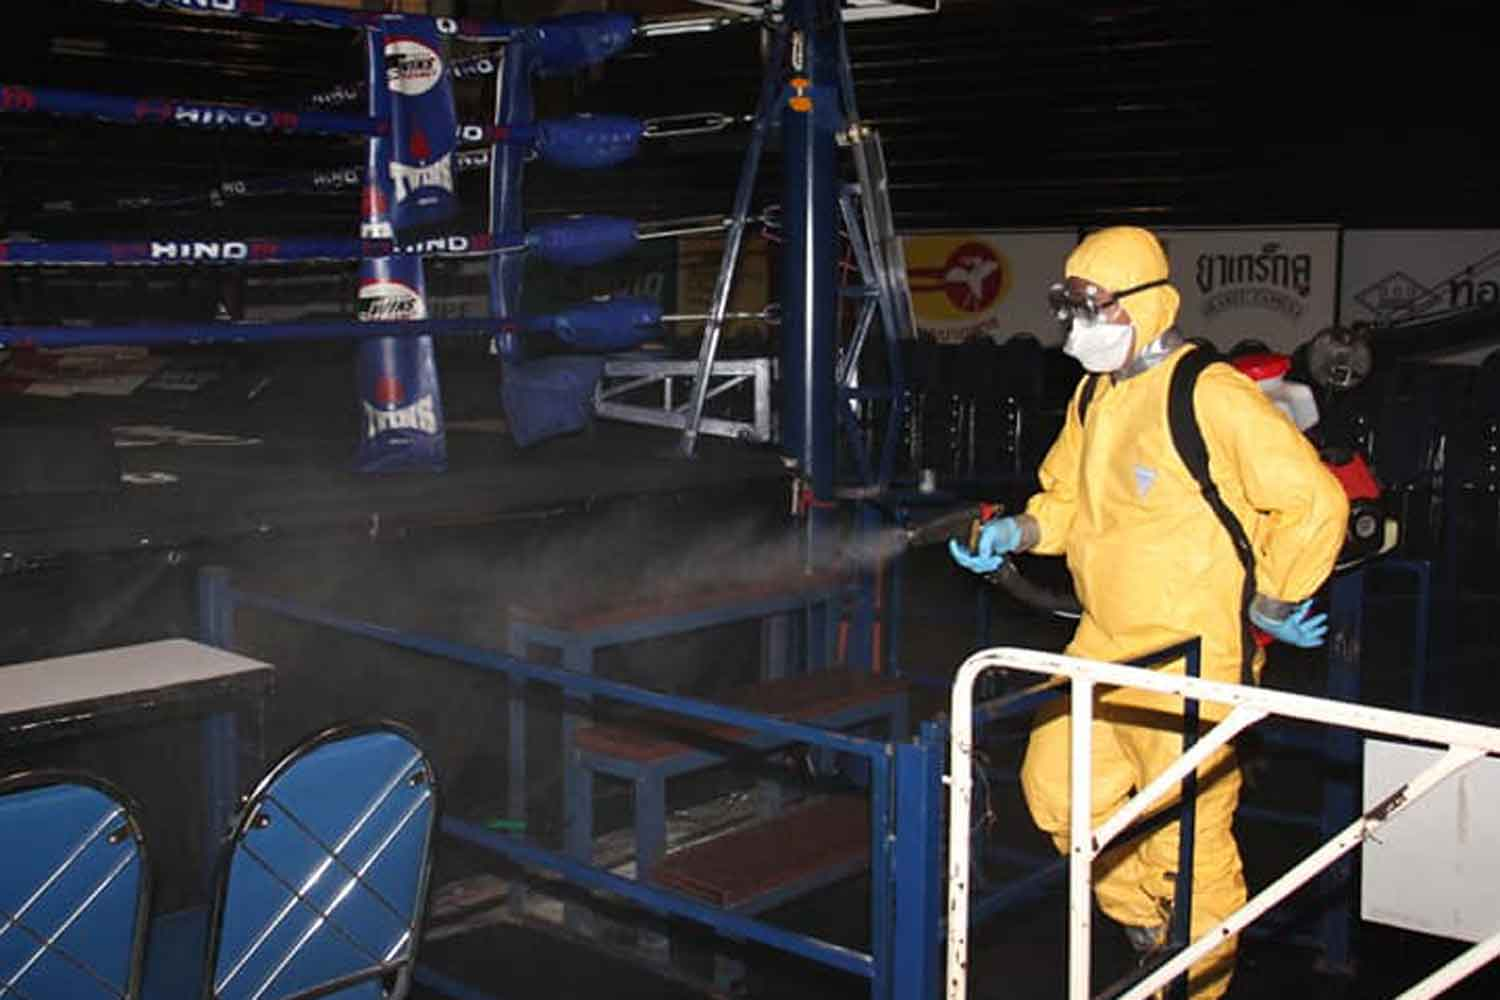 A health official sprays disinfectant at Lumpinee boxing stadium in Bang Khen district, Bangkok, on March 15. The rapid spread of Covid-19 has been partly blamed on the army's decision to ignore warnings and go ahead with boxing at the stadium on March 6. (Photo: Lumpinee stadium Facebook)